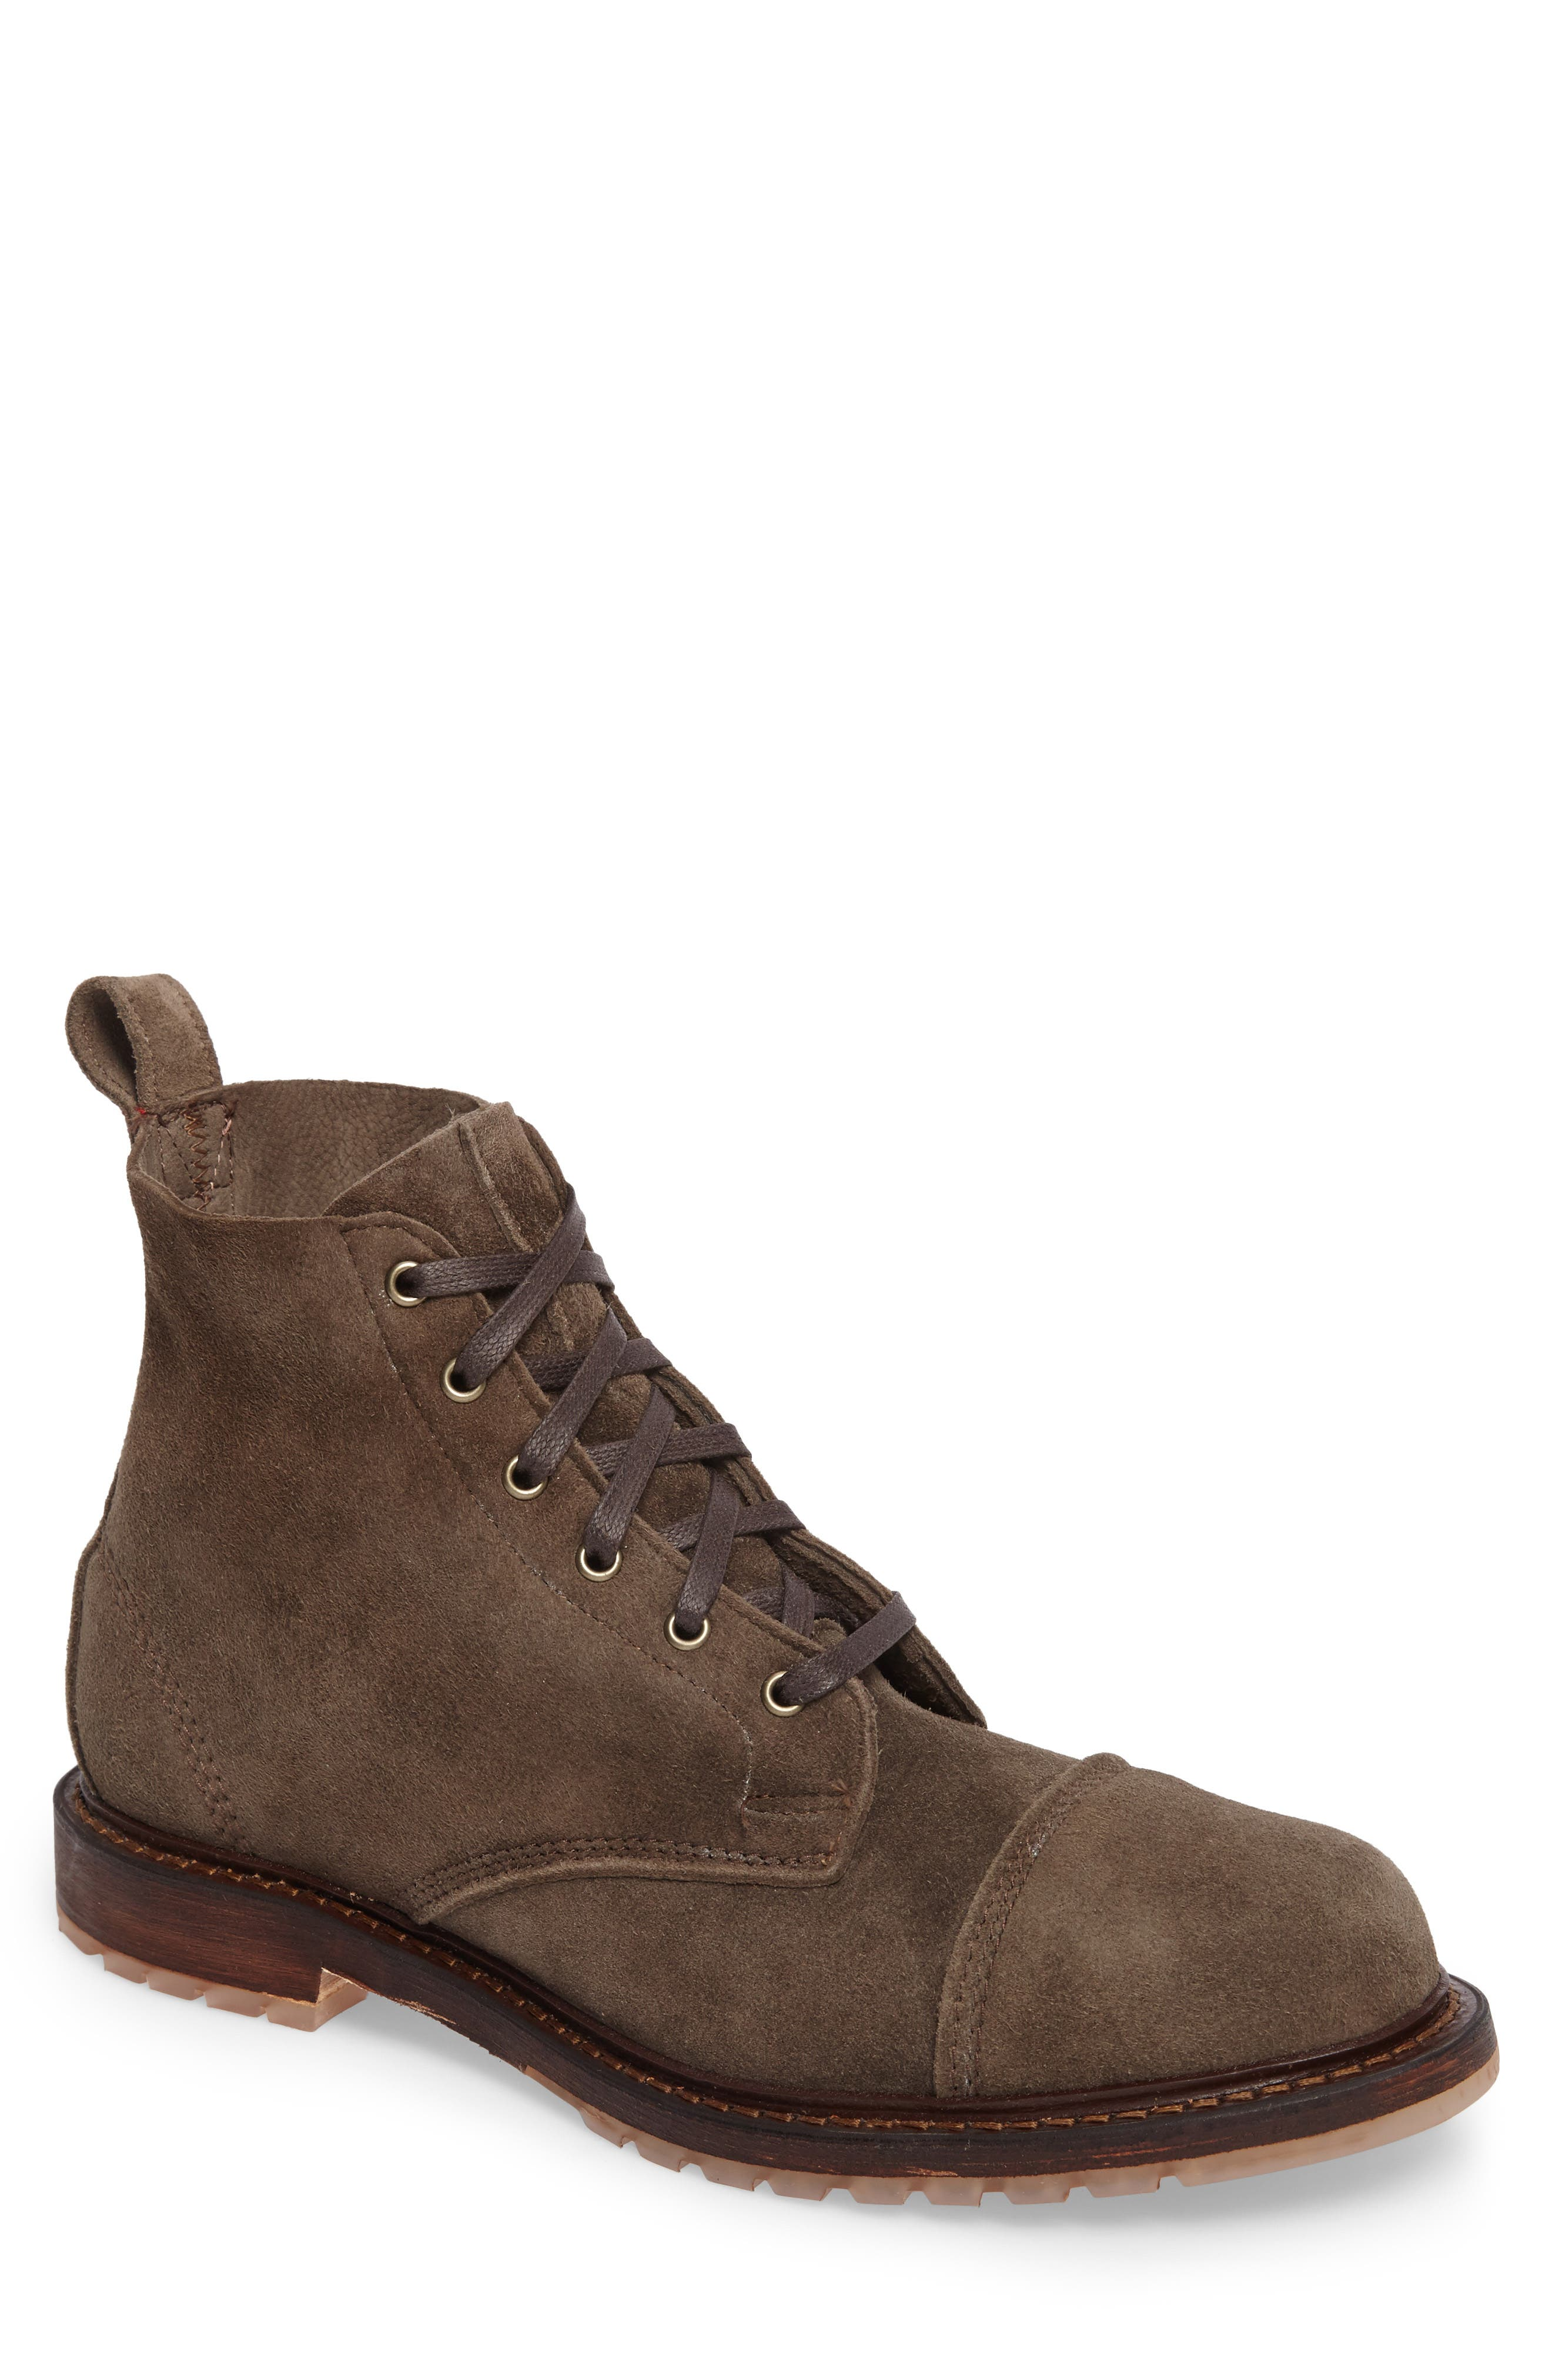 Caen Cap Toe Boot,                         Main,                         color, Taupe Leather